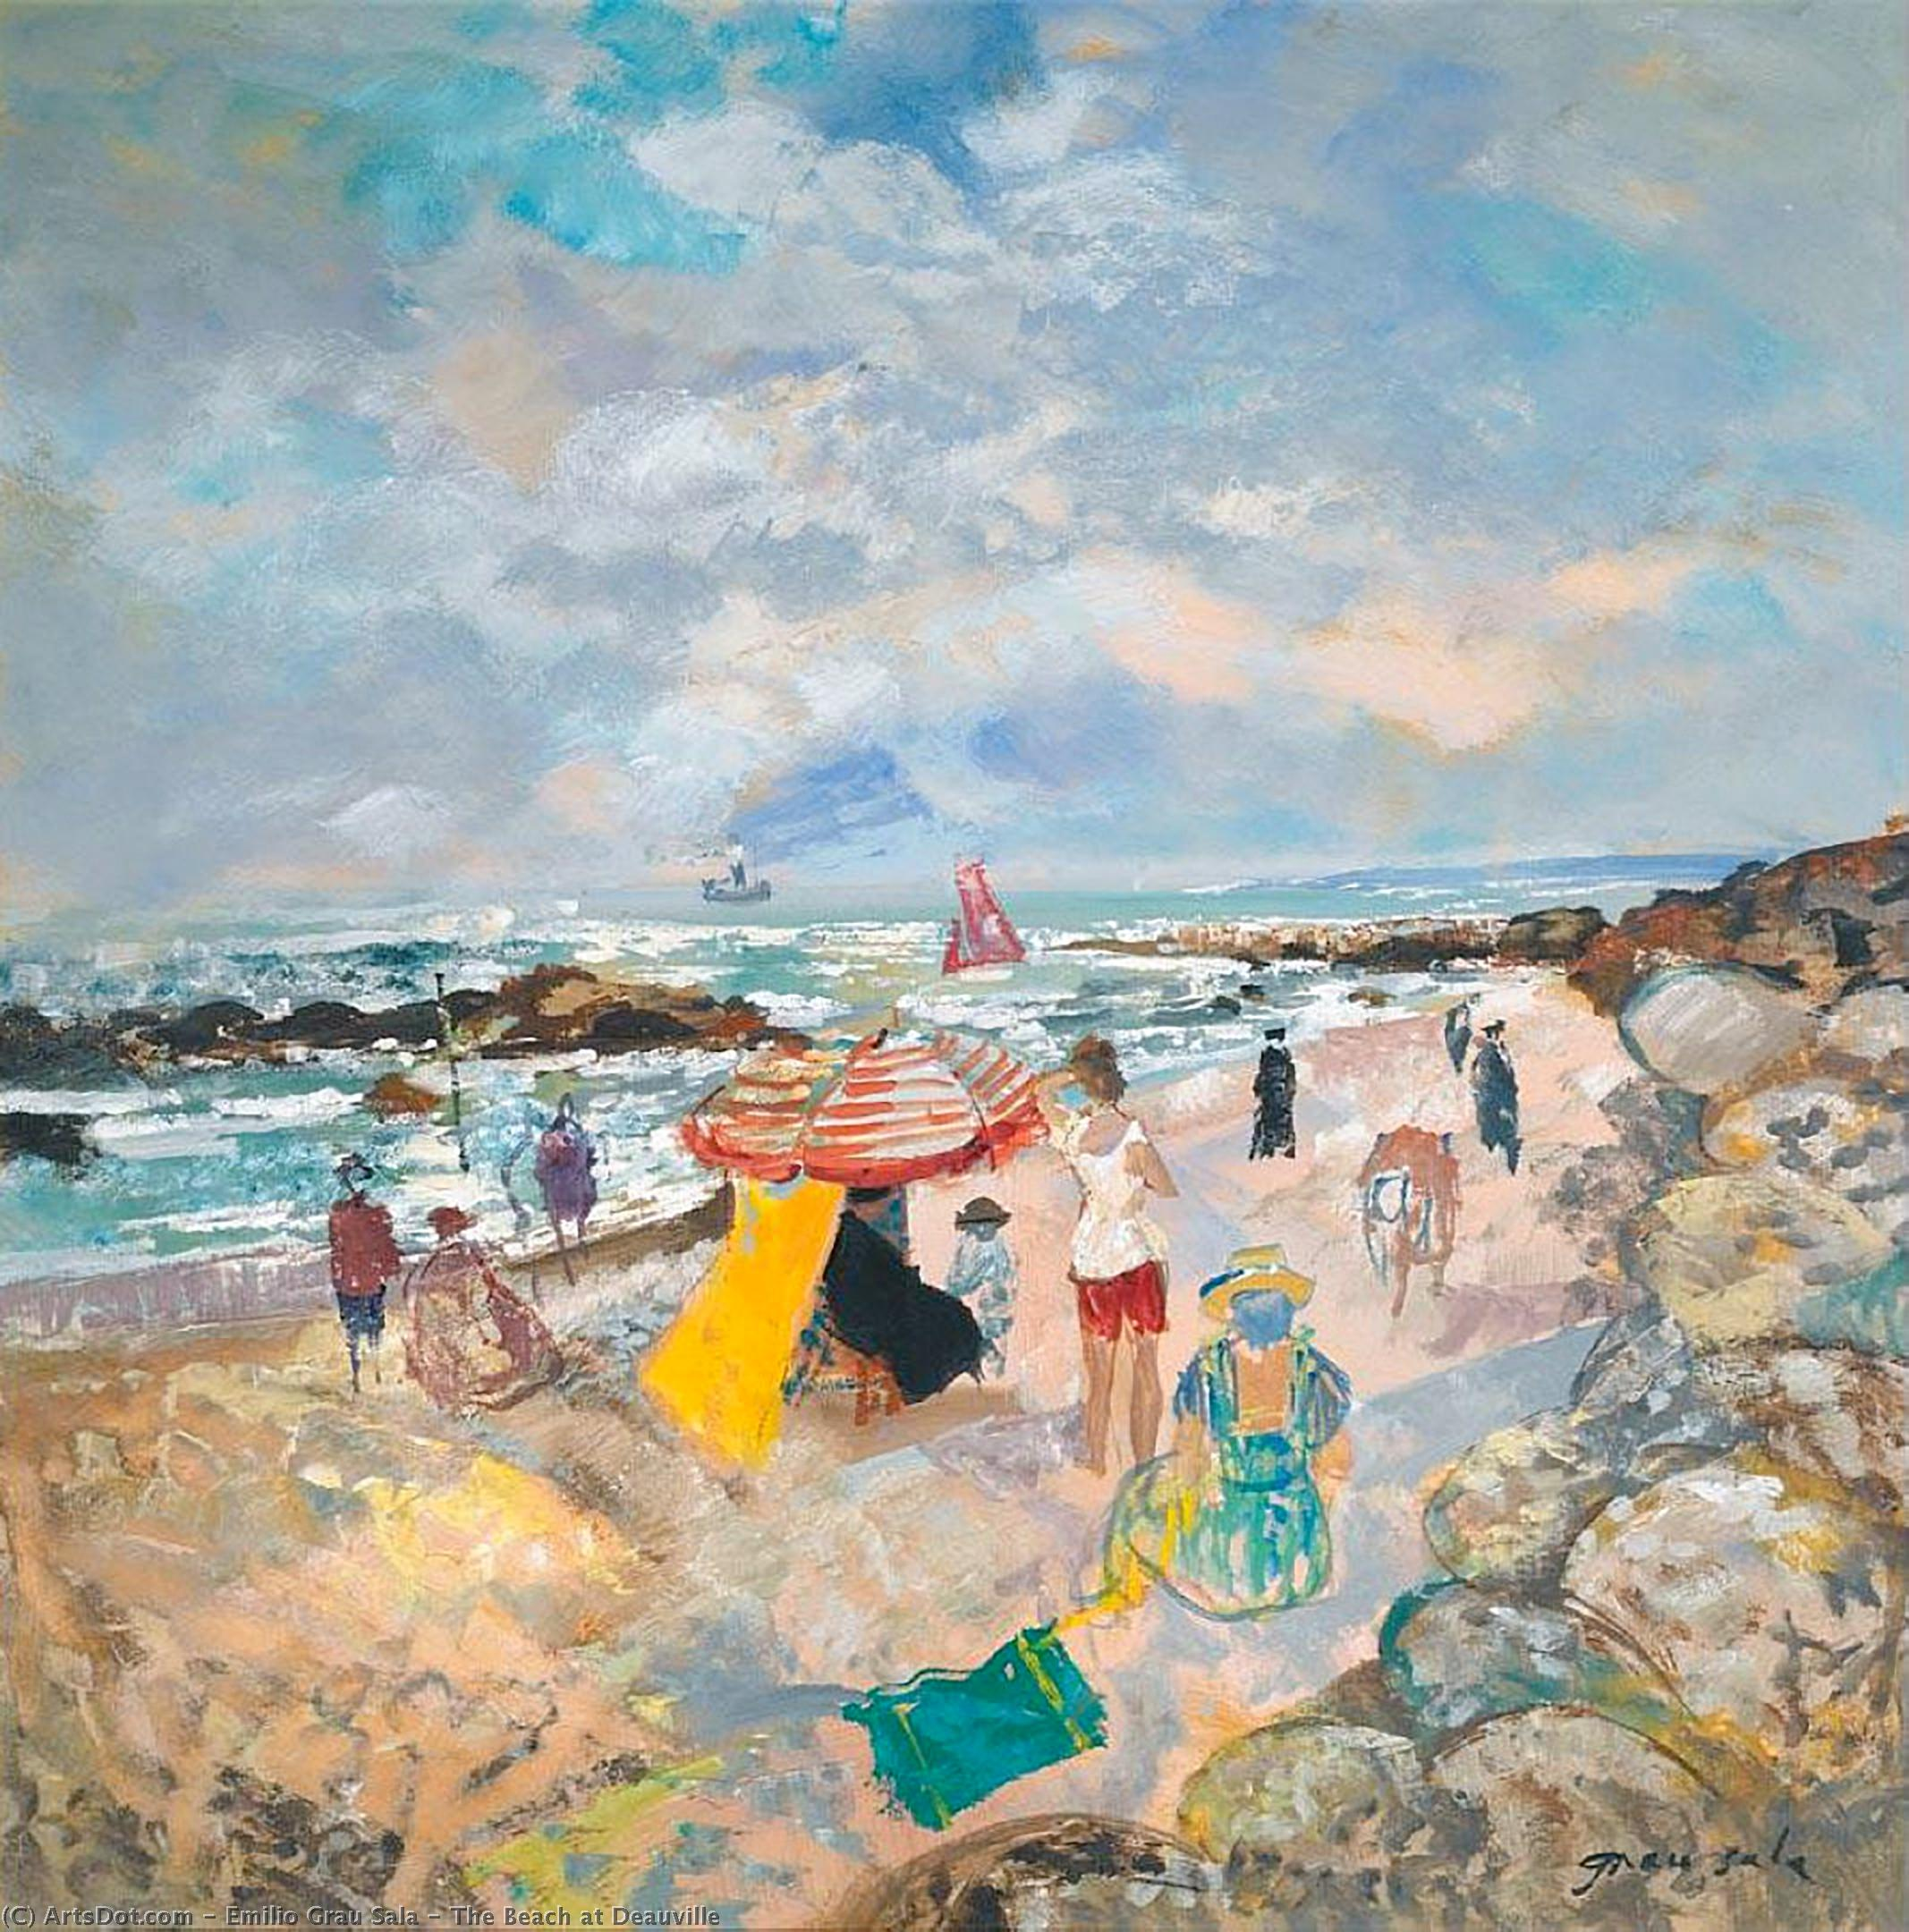 The Beach at Deauville by Emilio Grau Sala (1911-1975) | Art Reproduction | ArtsDot.com